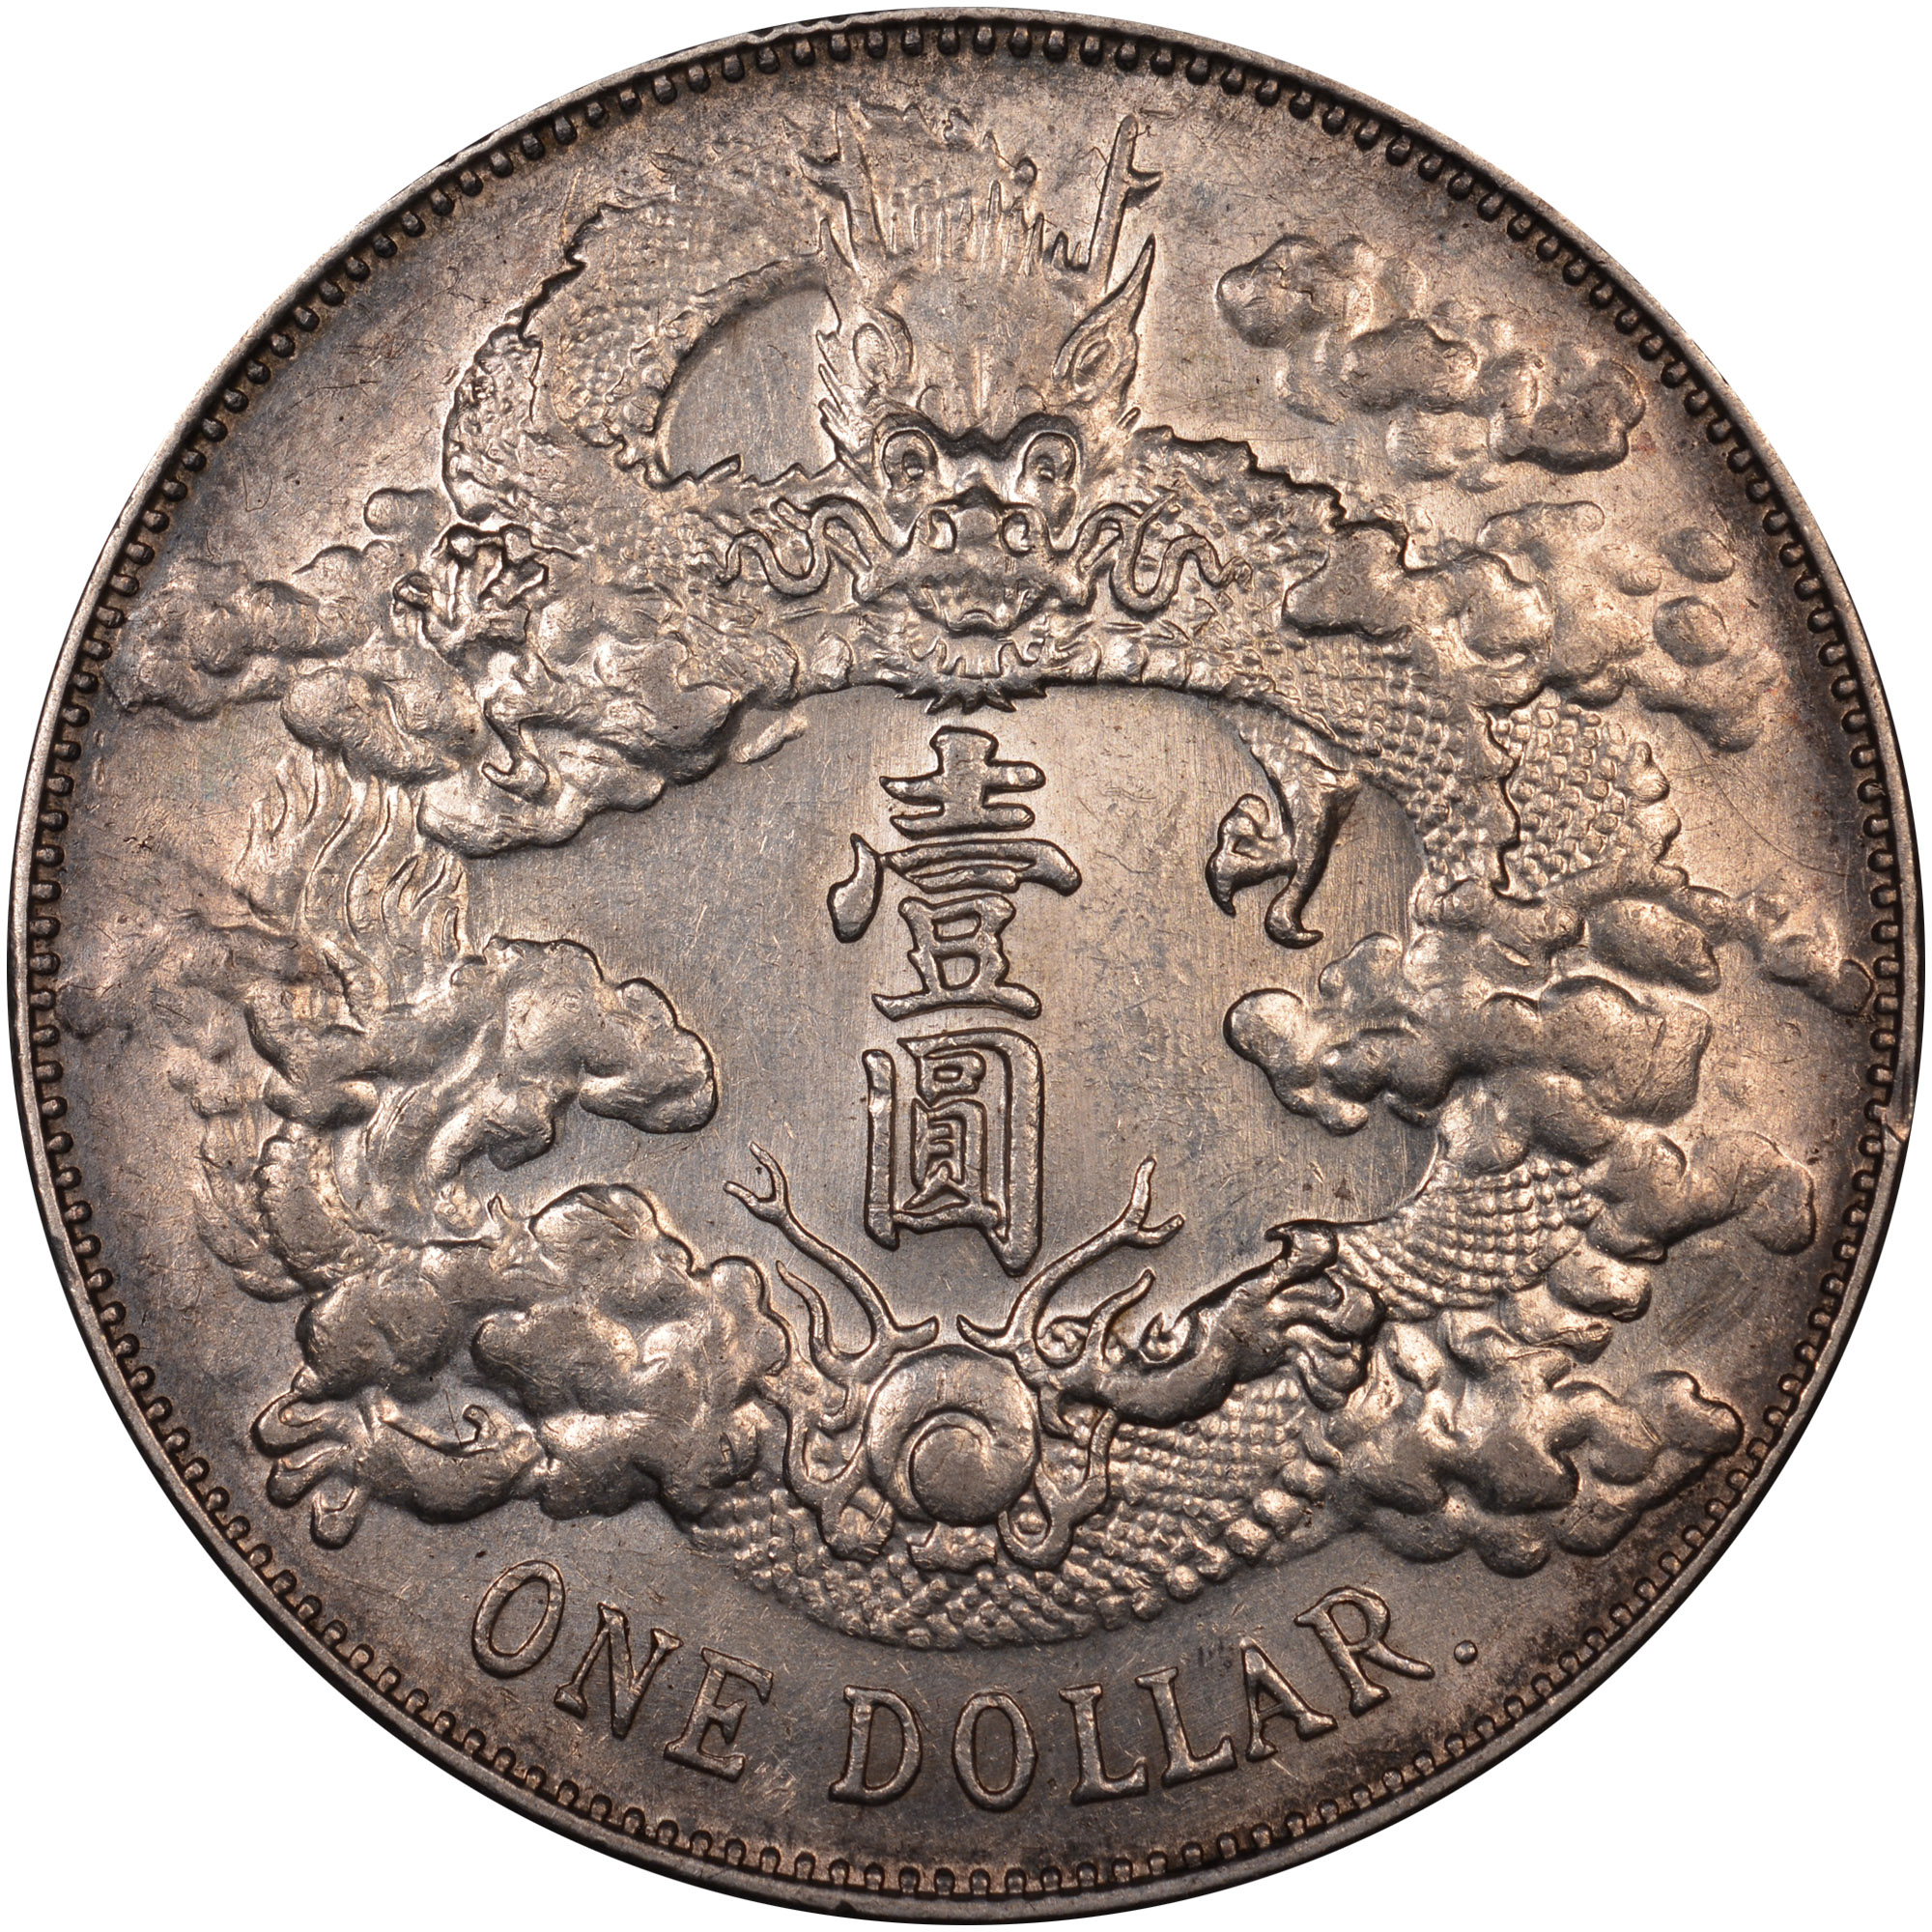 3(1911) China EMPIRE Dollar reverse